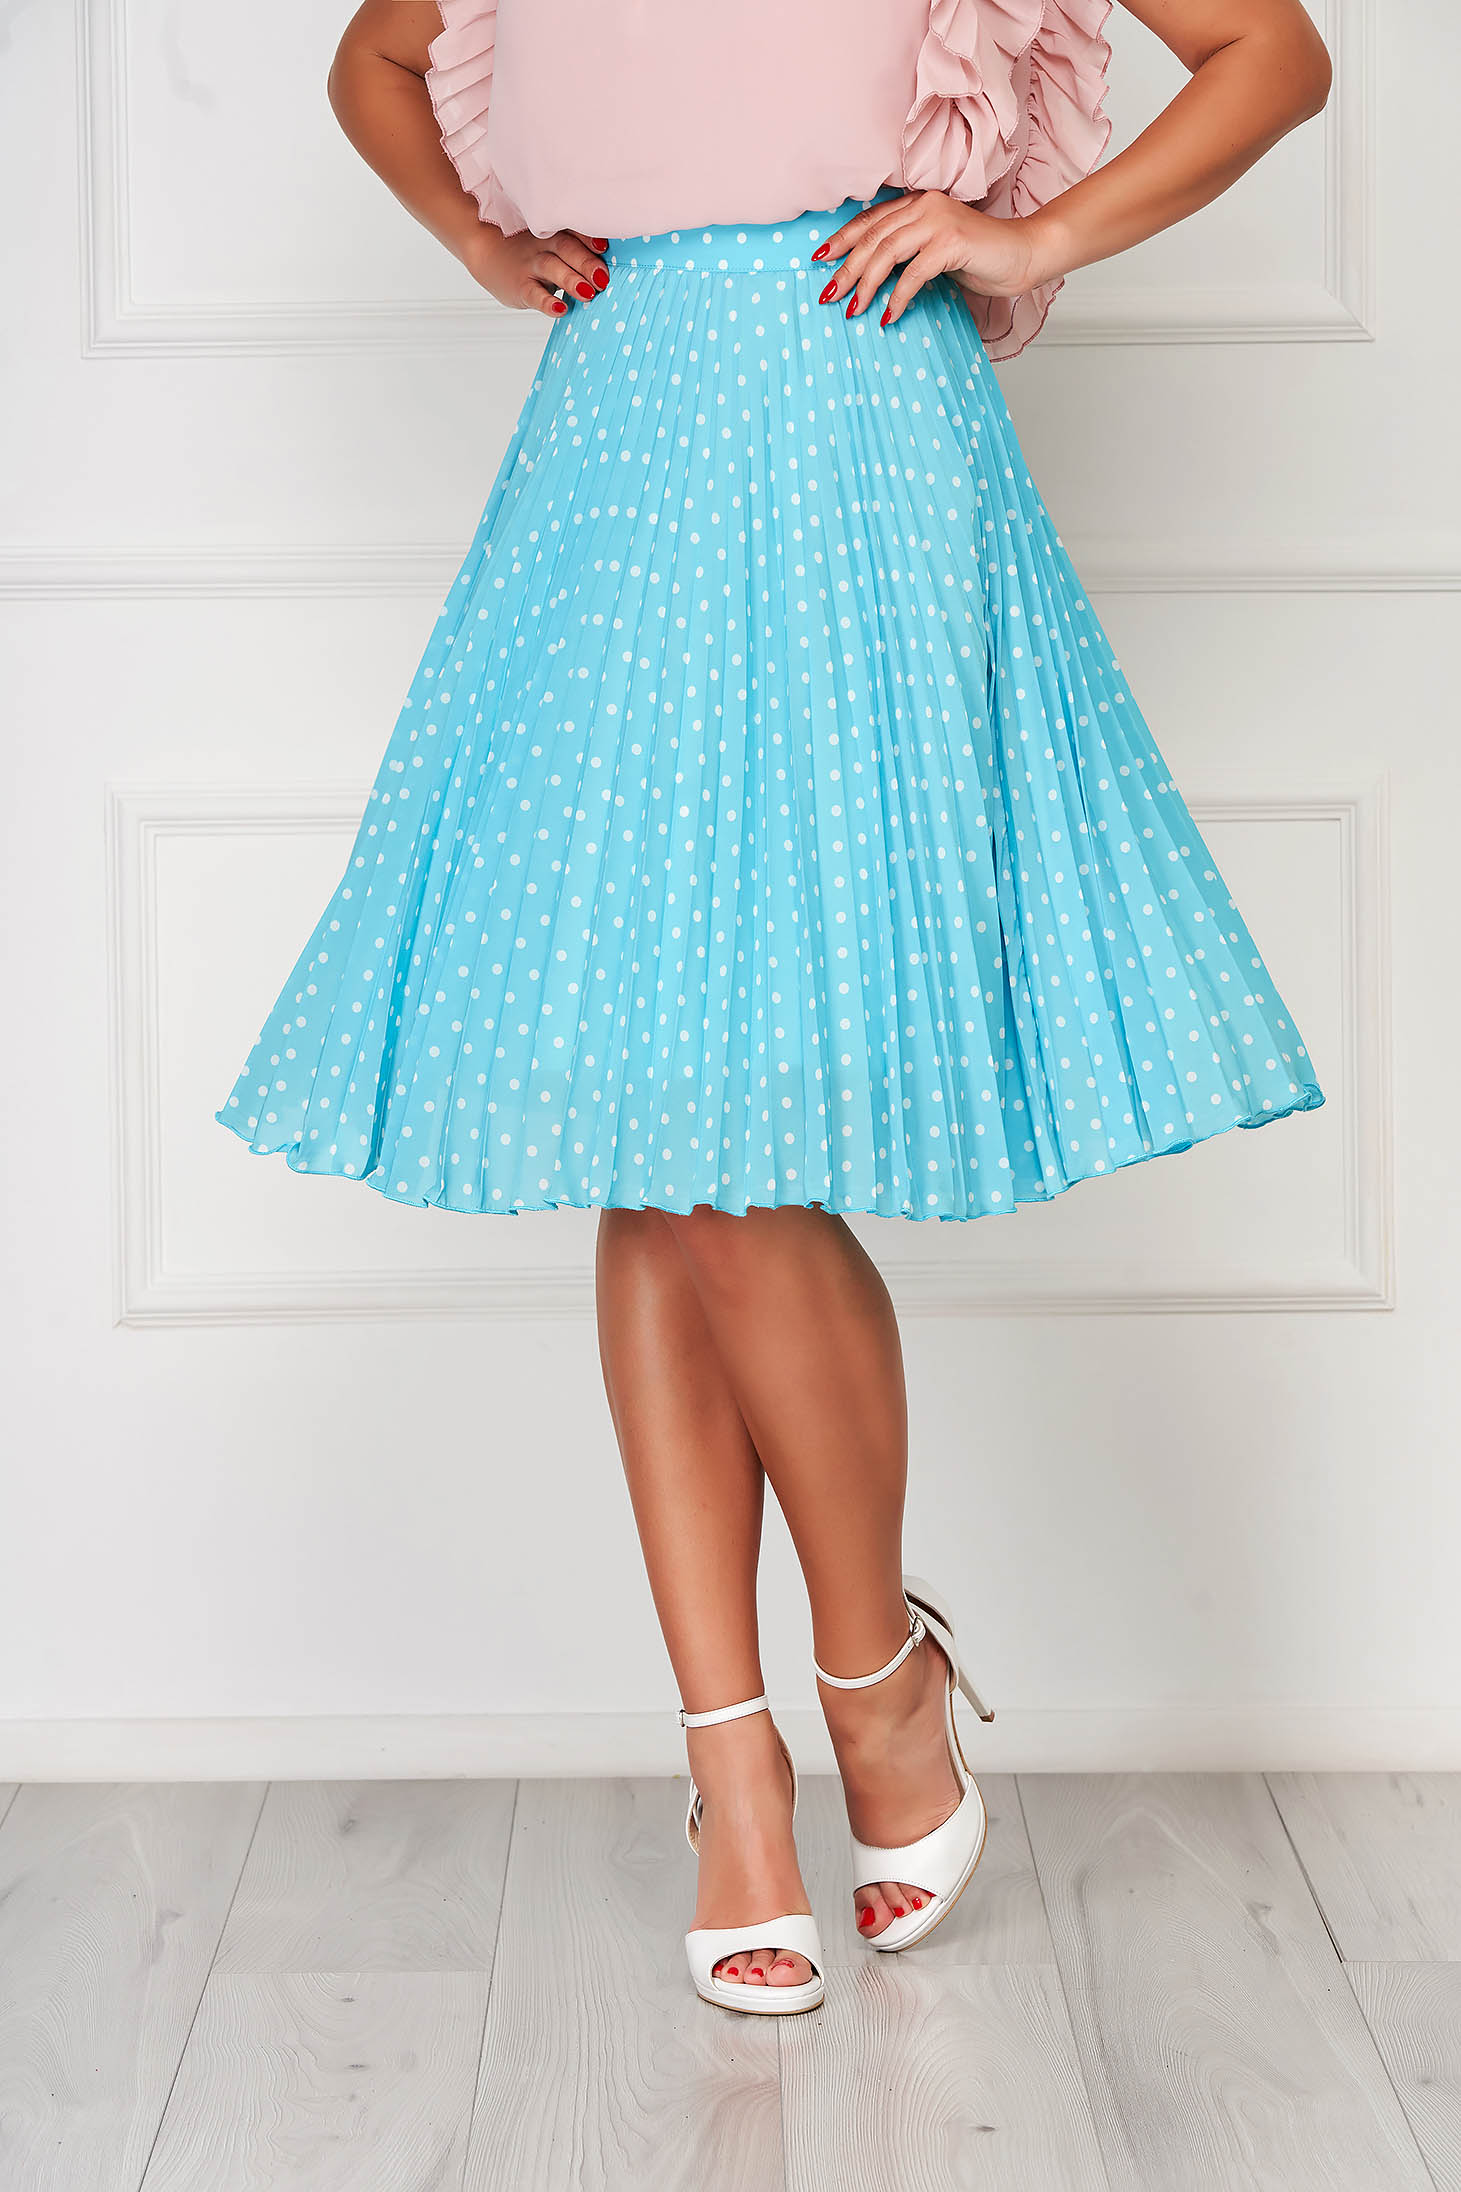 Turquoise skirt elegant cloche high waisted from veil fabric dots print folded up